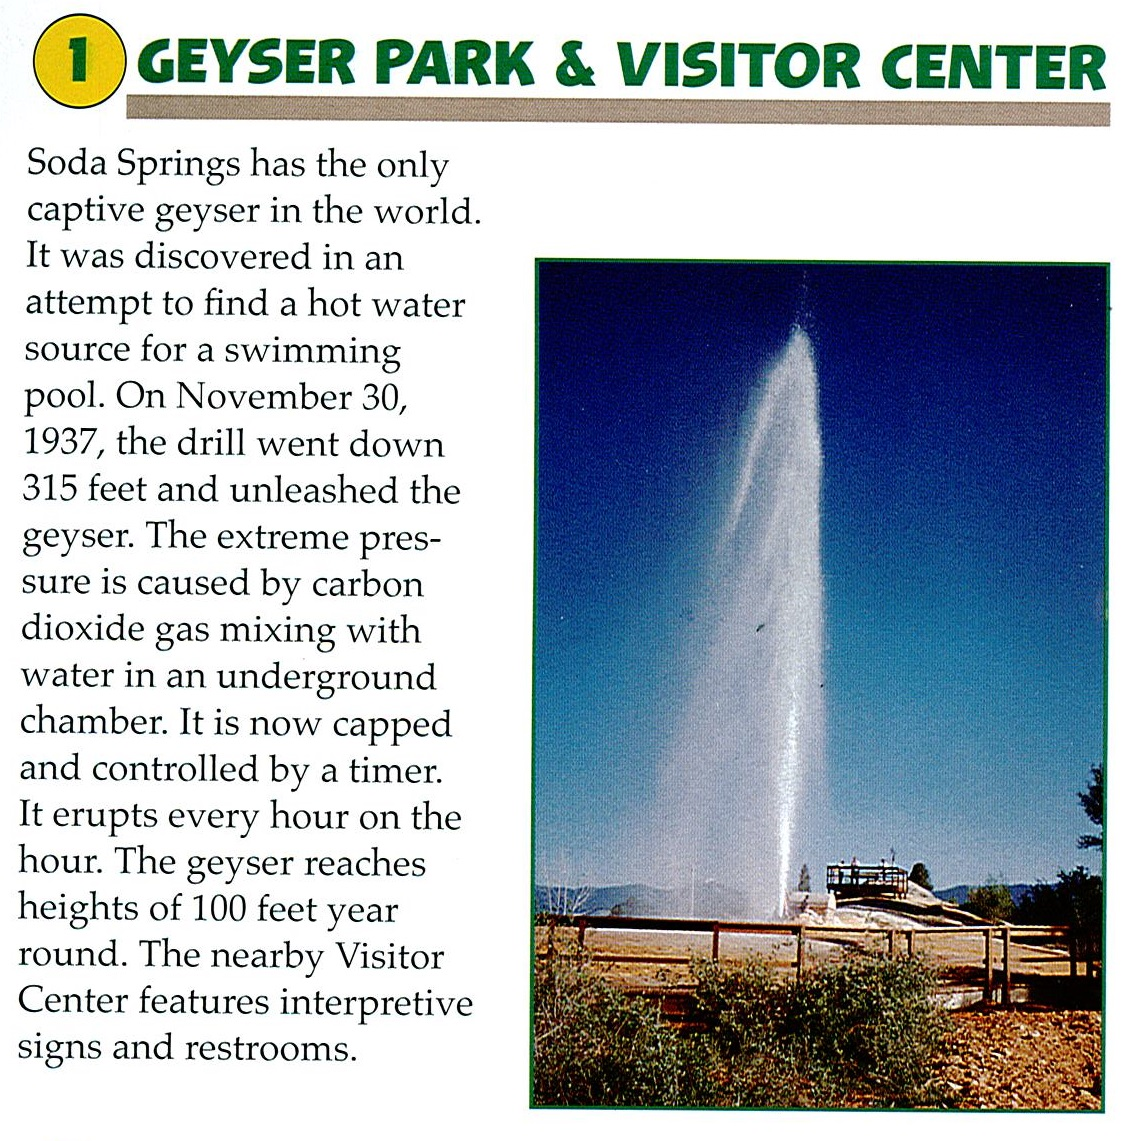 1 Geyser Park and Visitor Center